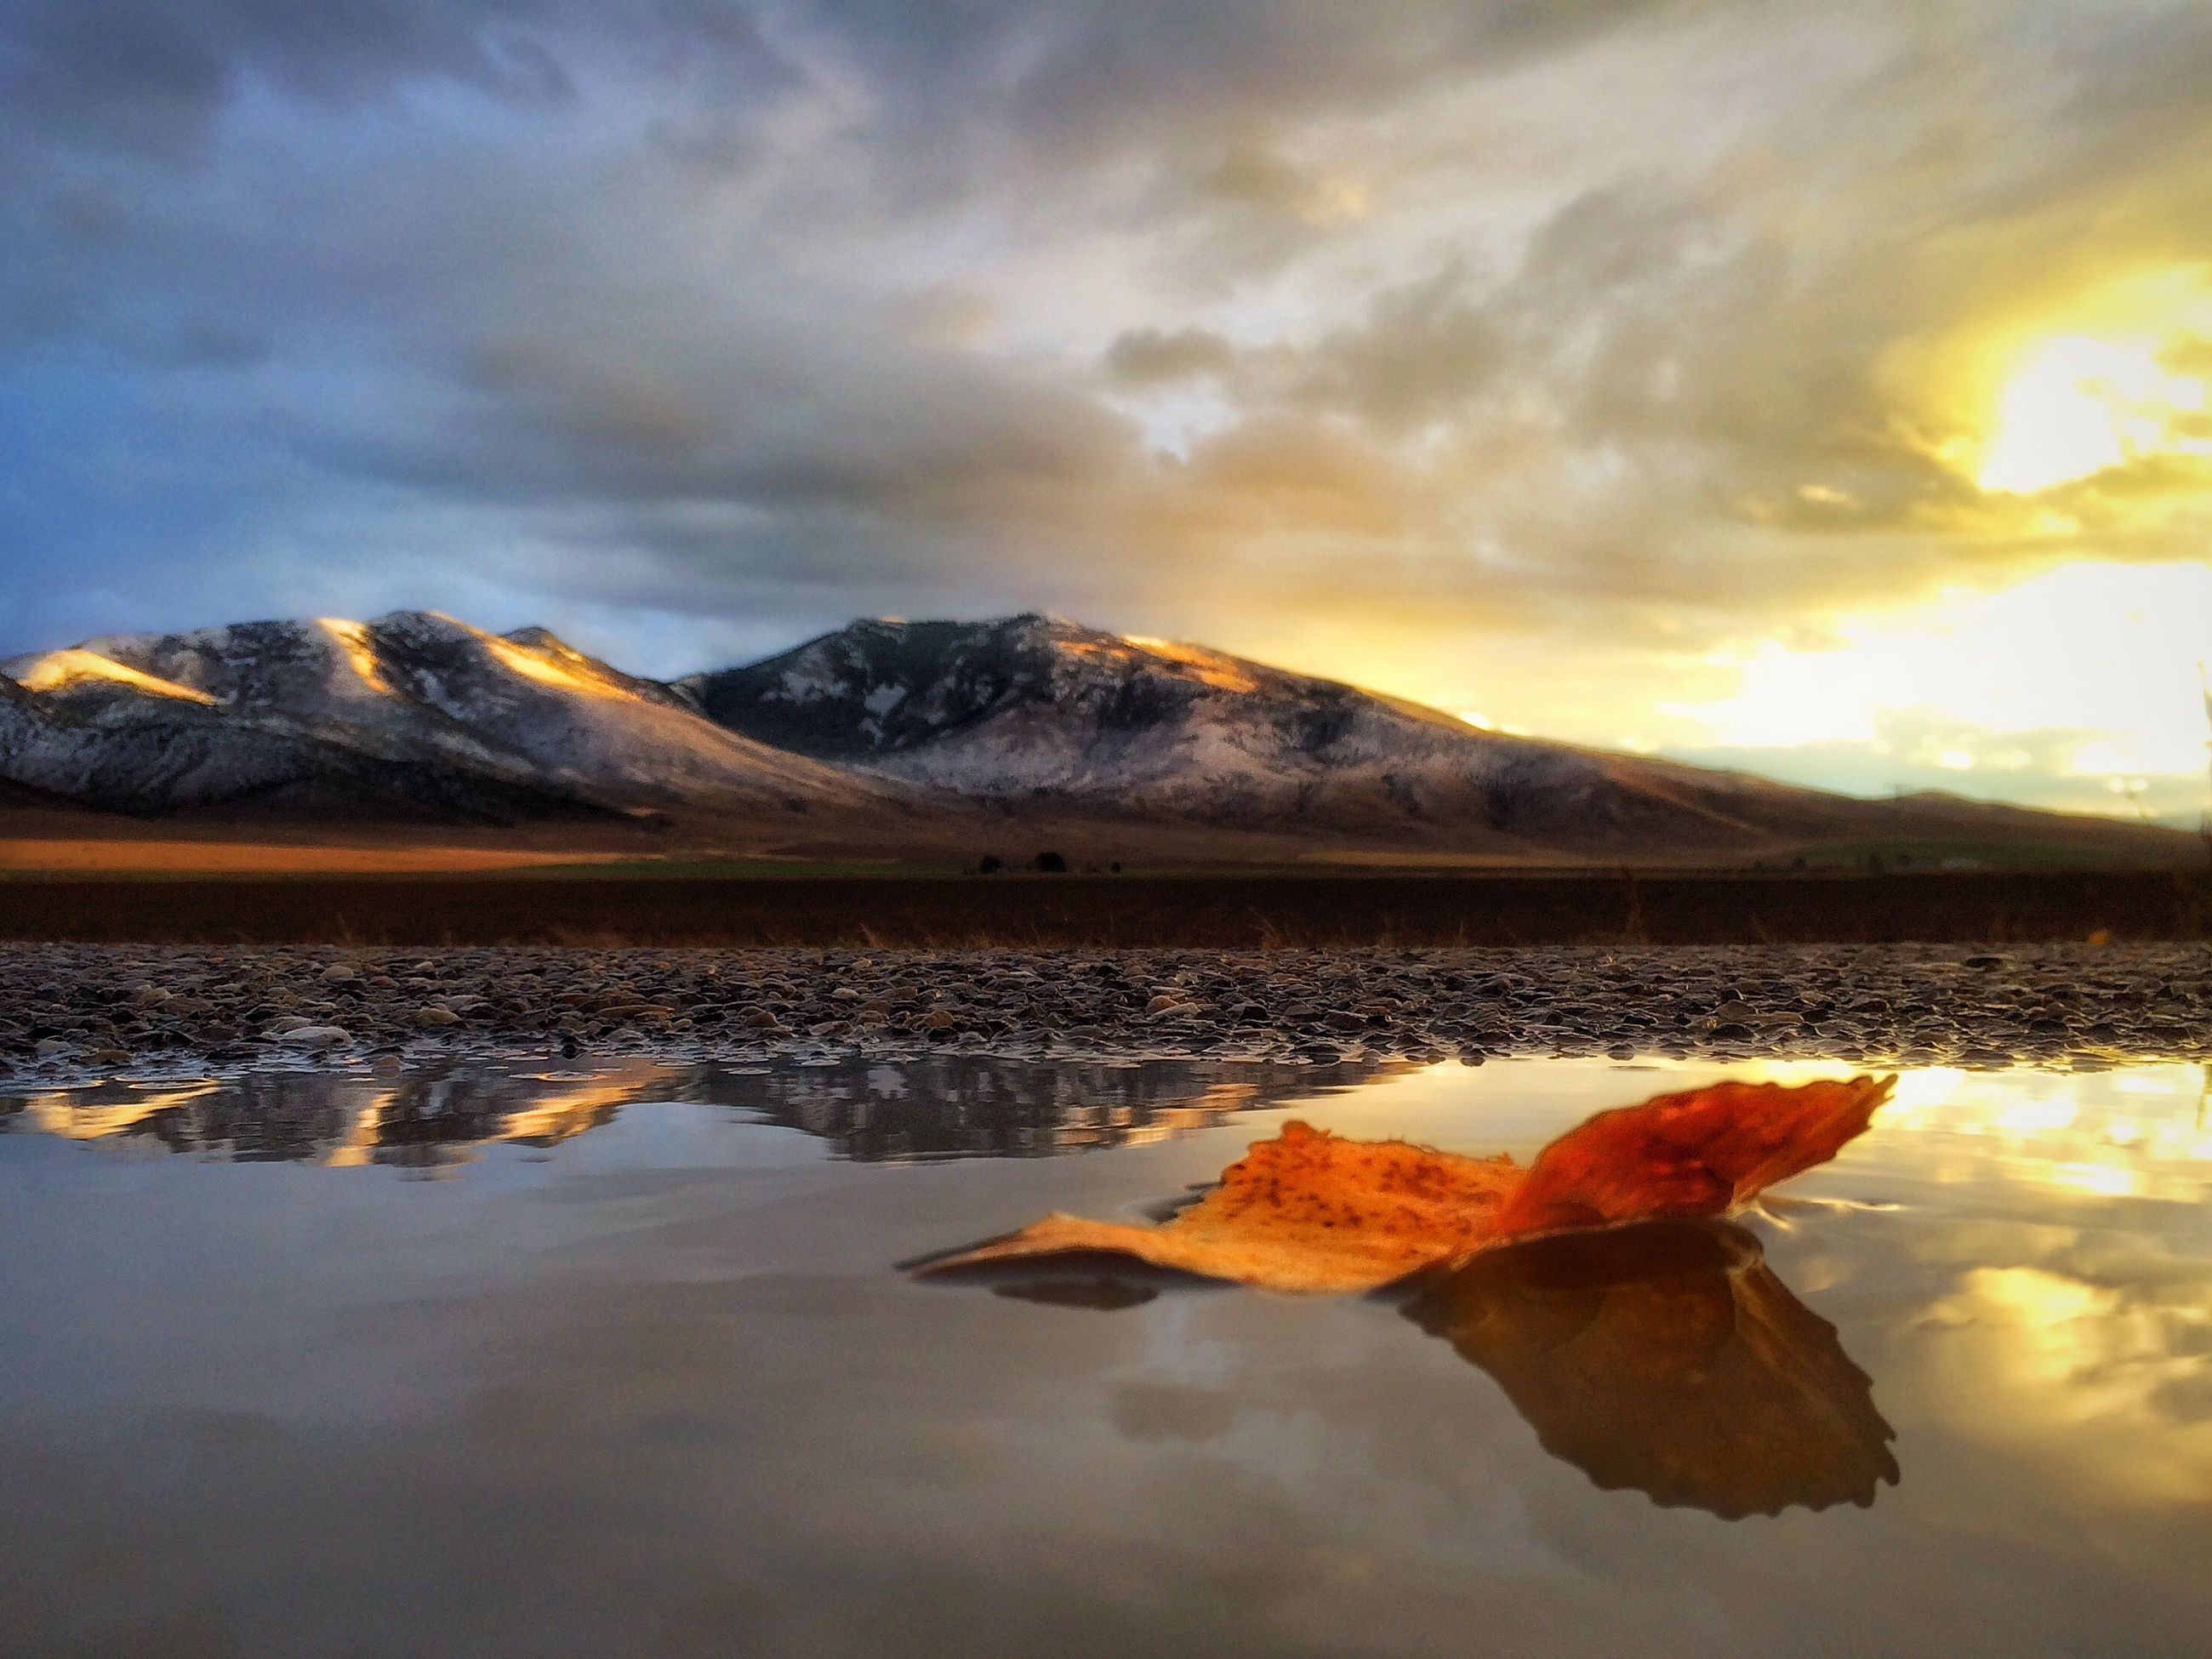 water, sky, cloud - sky, reflection, tranquility, lake, nature, tranquil scene, sunset, beauty in nature, scenics, cloudy, weather, season, cloud, cold temperature, winter, outdoors, mountain, orange color